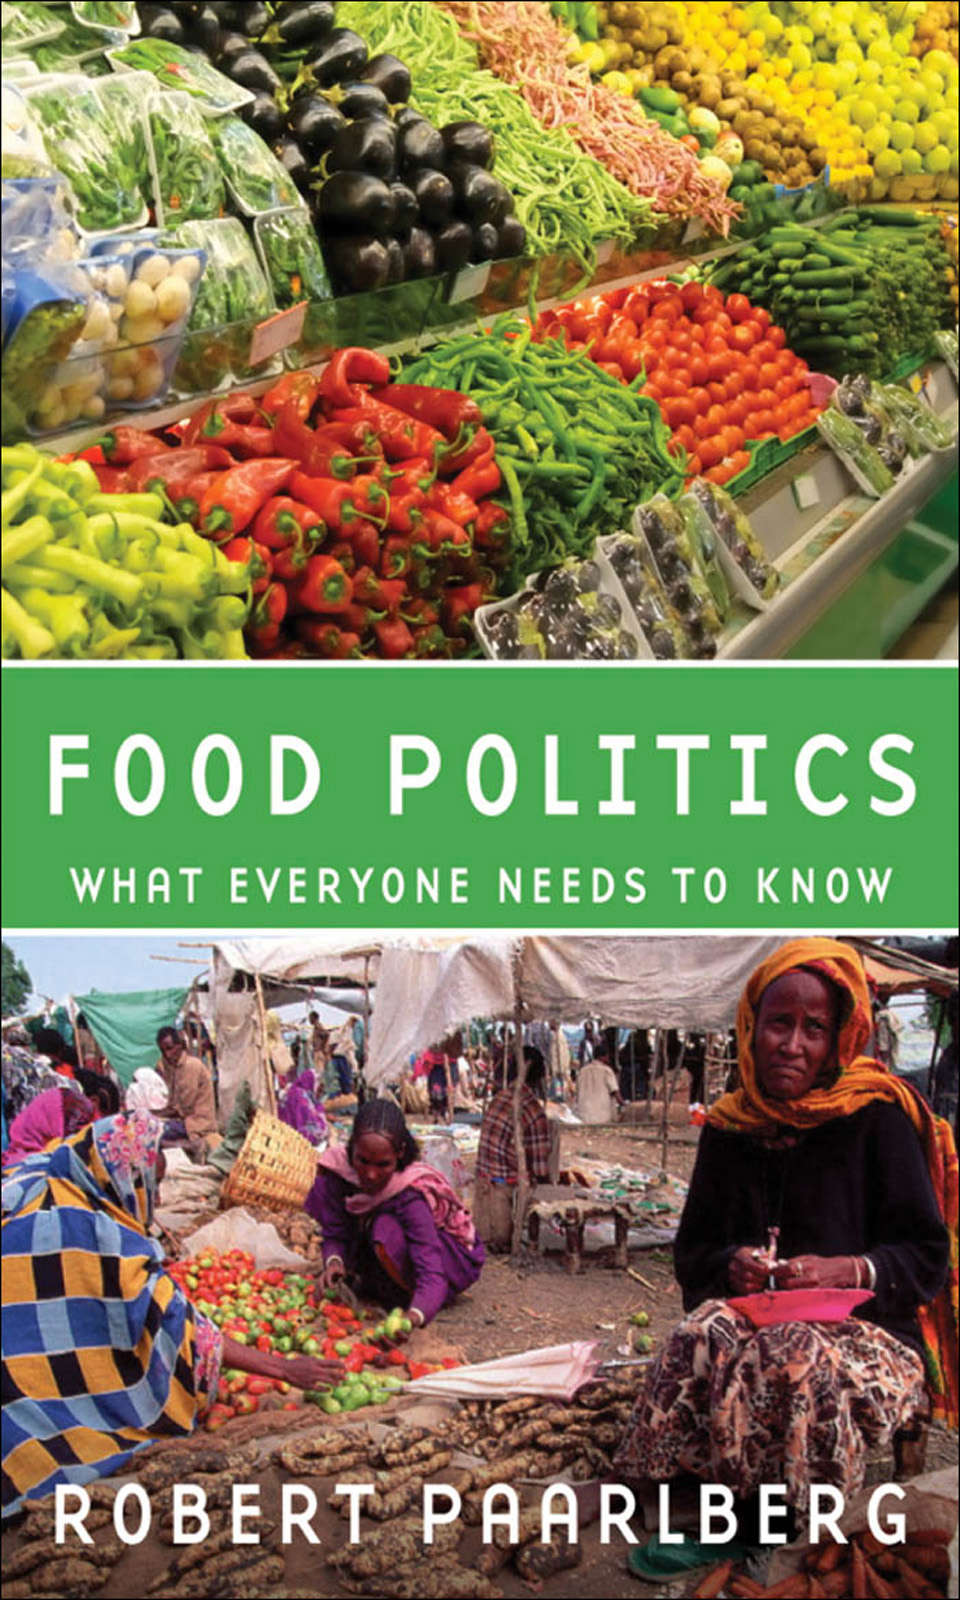 Food Politics:What Everyone Needs to Know